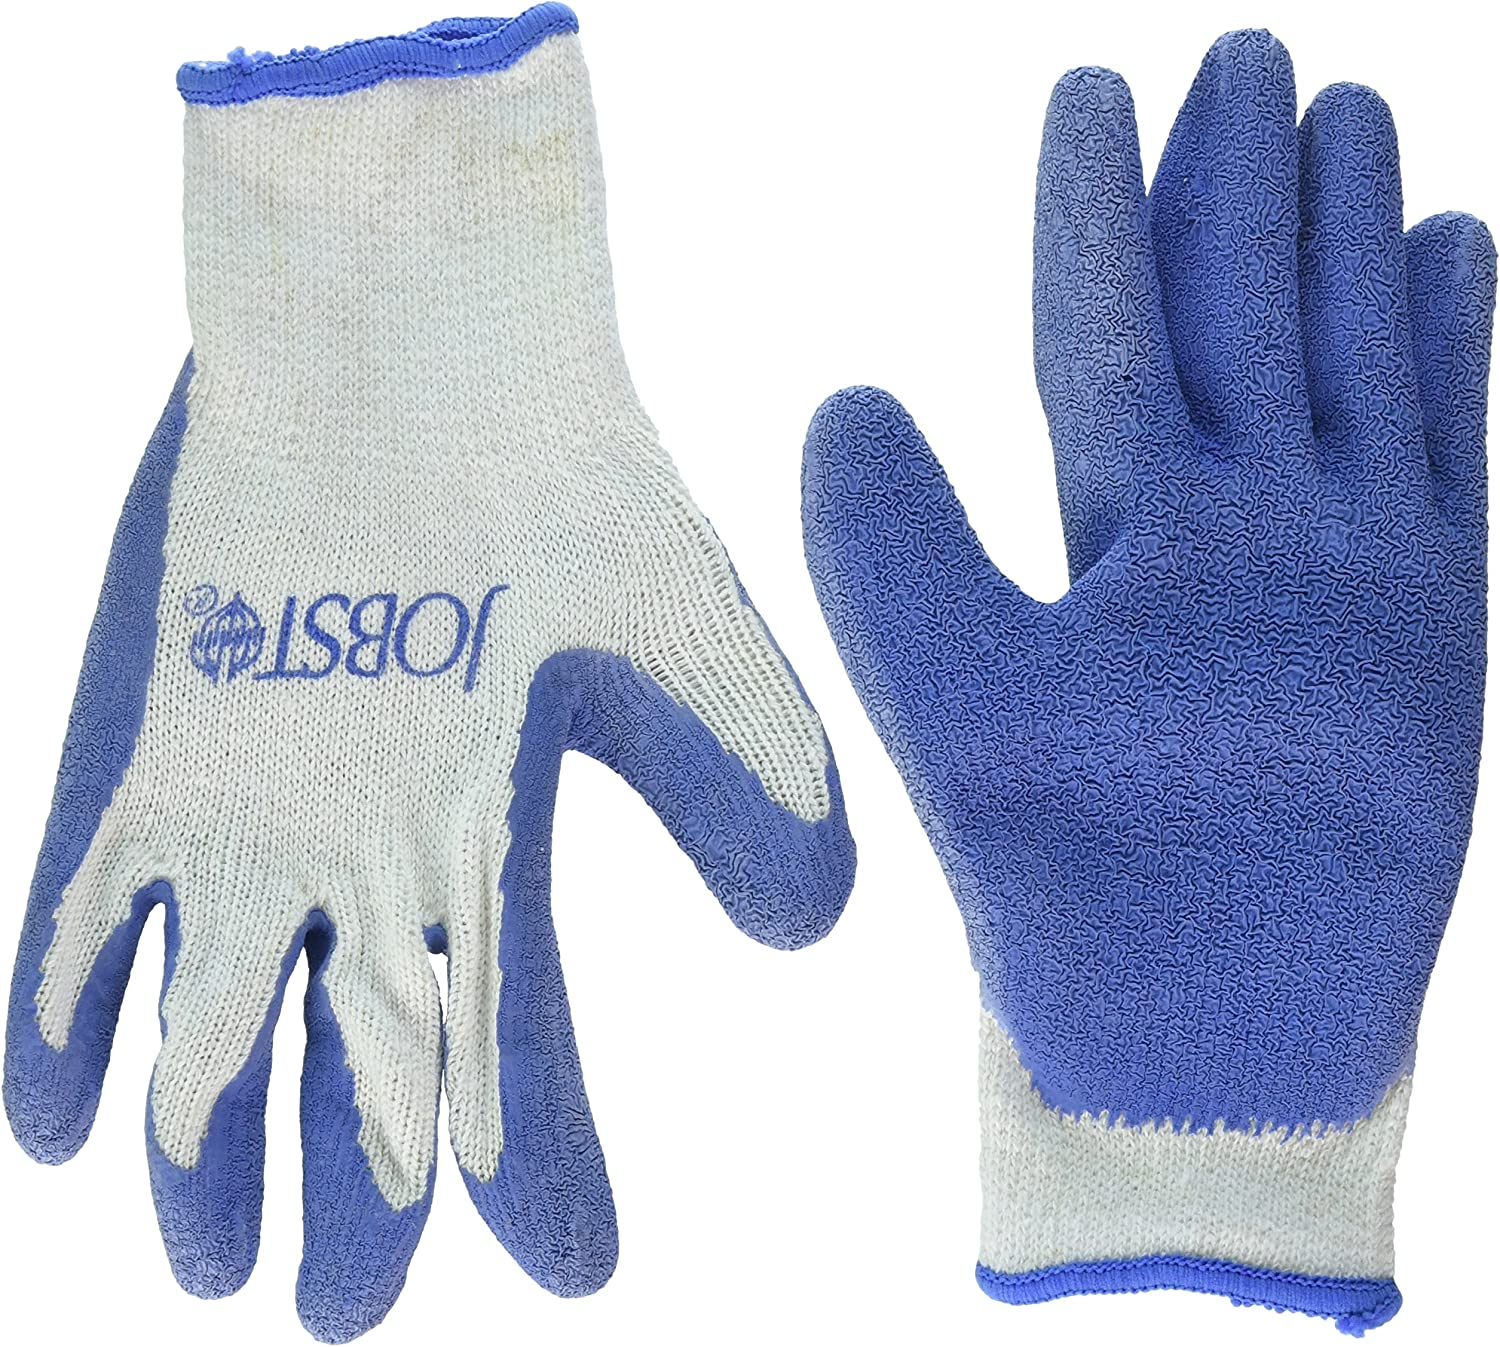 Professional High quality cotton latex dipped Garden Gloves Compression Stock